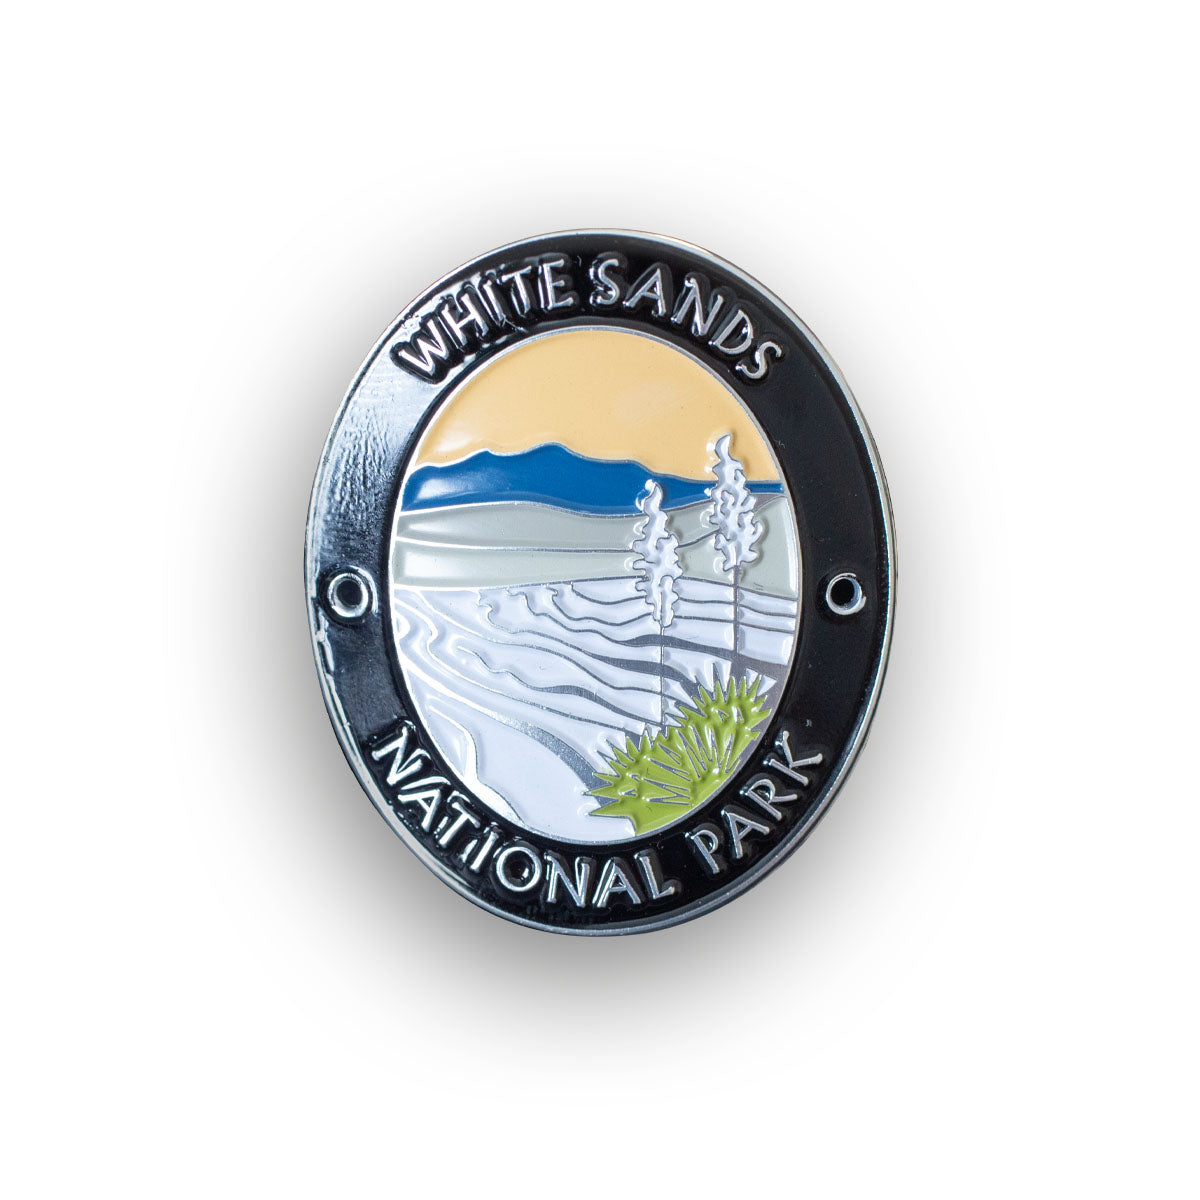 White Sands National Park Walking Stick Medallion